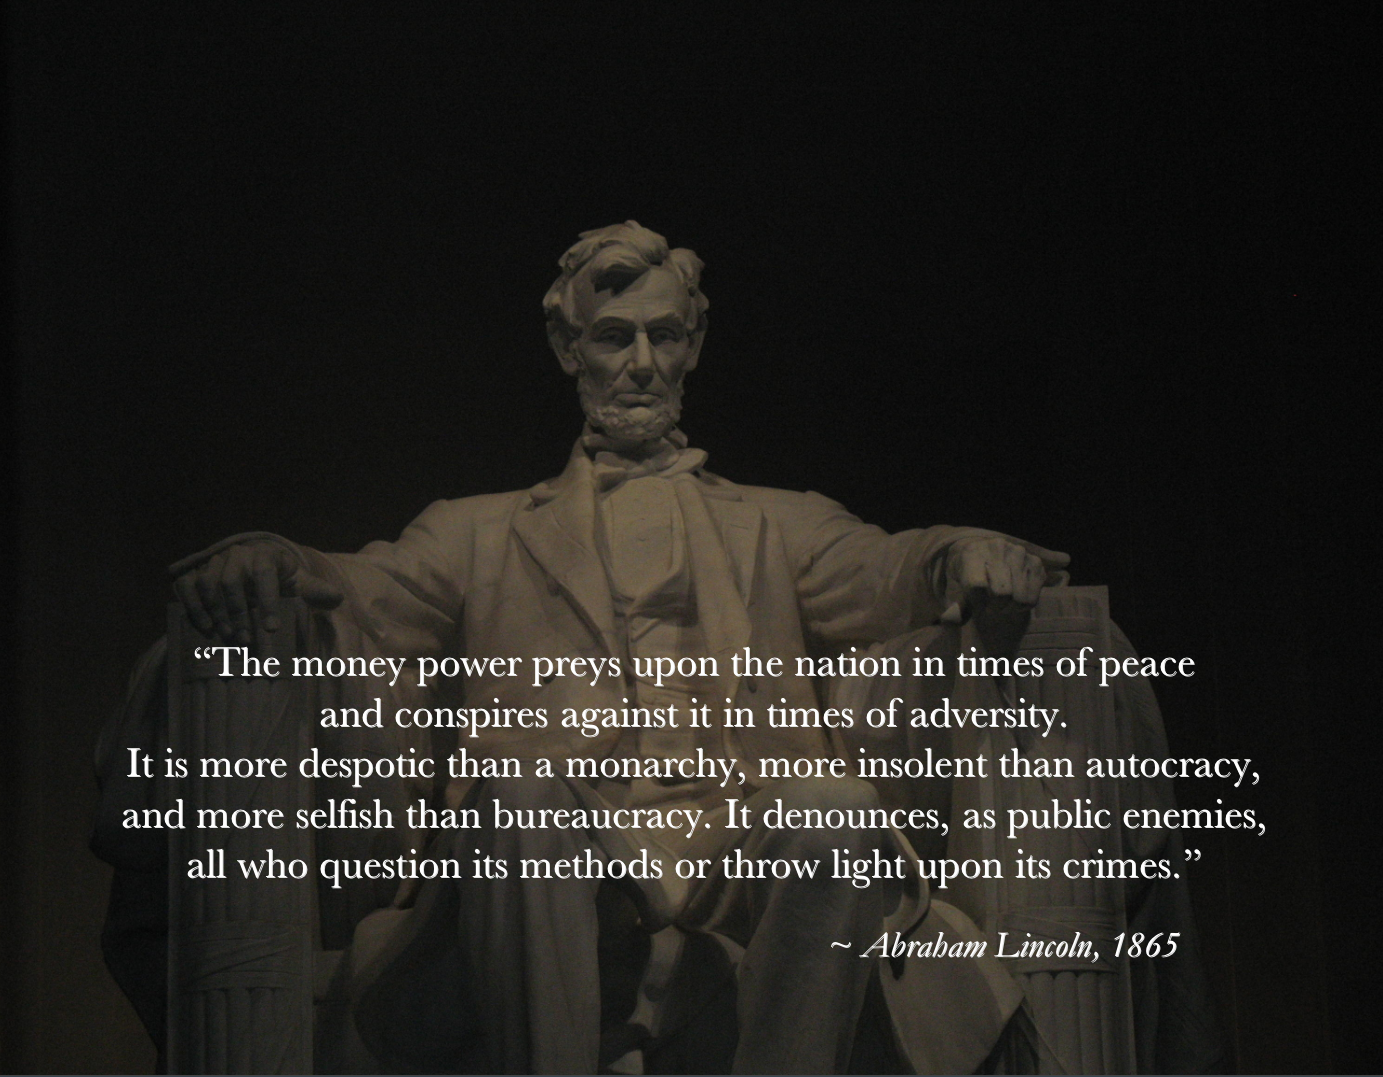 Lincoln on The Money Power